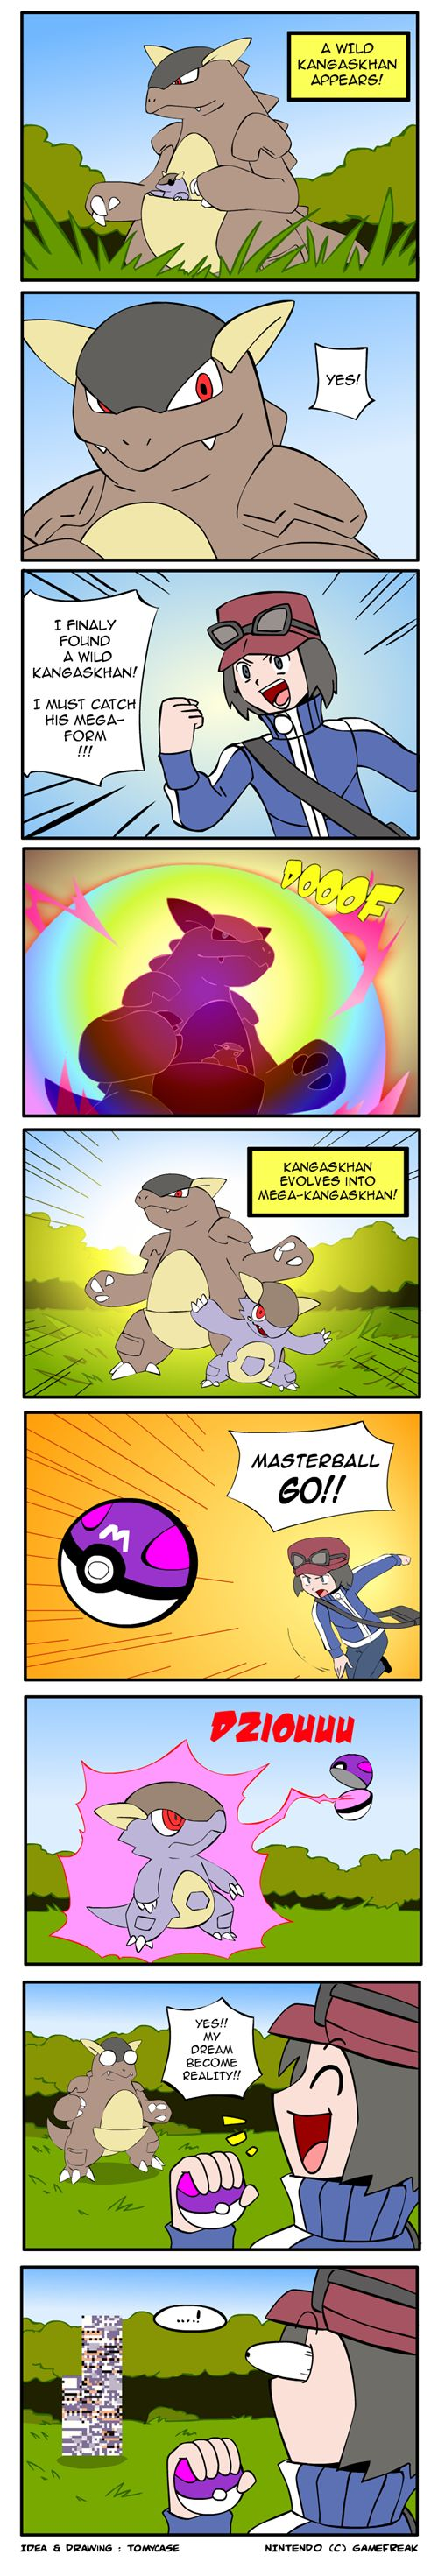 Mega Kangaskhan Error....but why the master ball so stupid what a dumbass